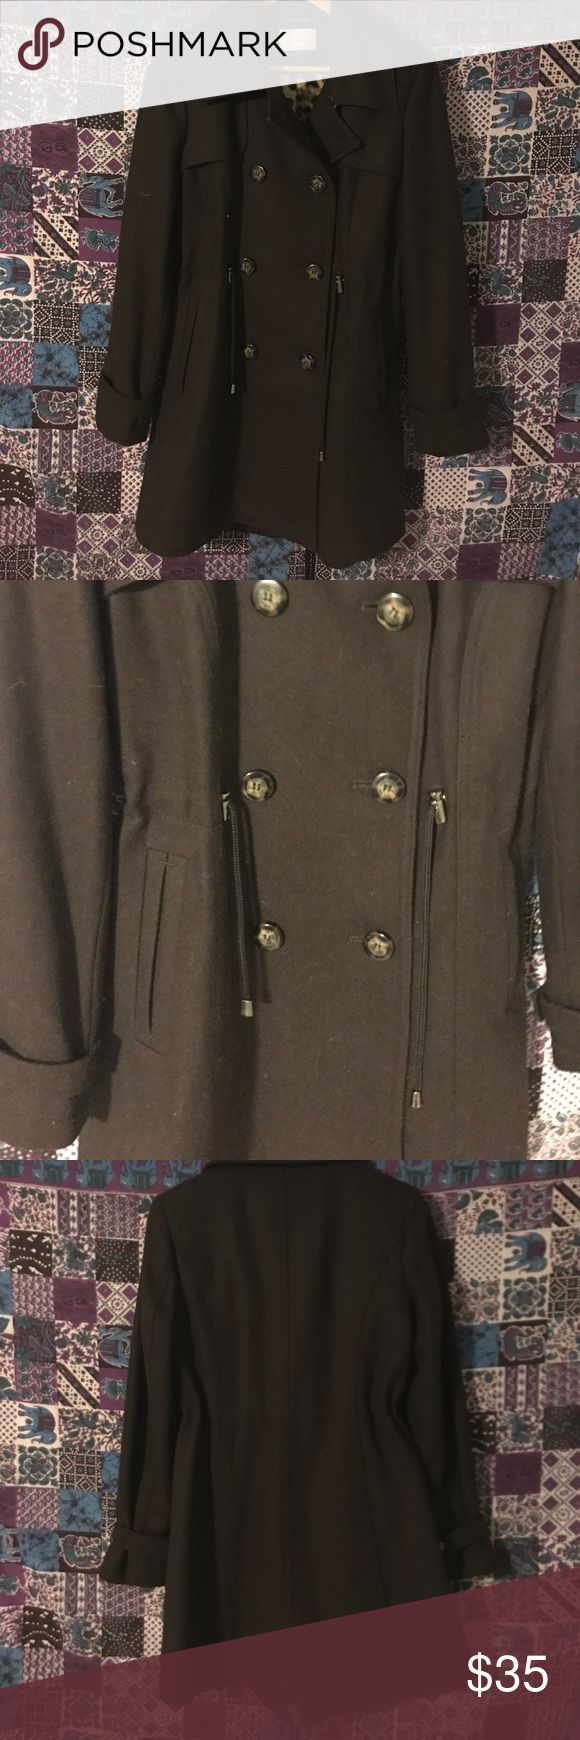 Fall Frolick Pea Coat Perfect for fall peacoat. Double button front. Dark brown. Laundry by Shelli Segal. Fits like xs-sm. Size tag removed inside for comfort. Good condition with general wear. Sorry no modeling or trades. Bundle for a discount. Laundry By Shelli Segal Jackets & Coats Pea Coats